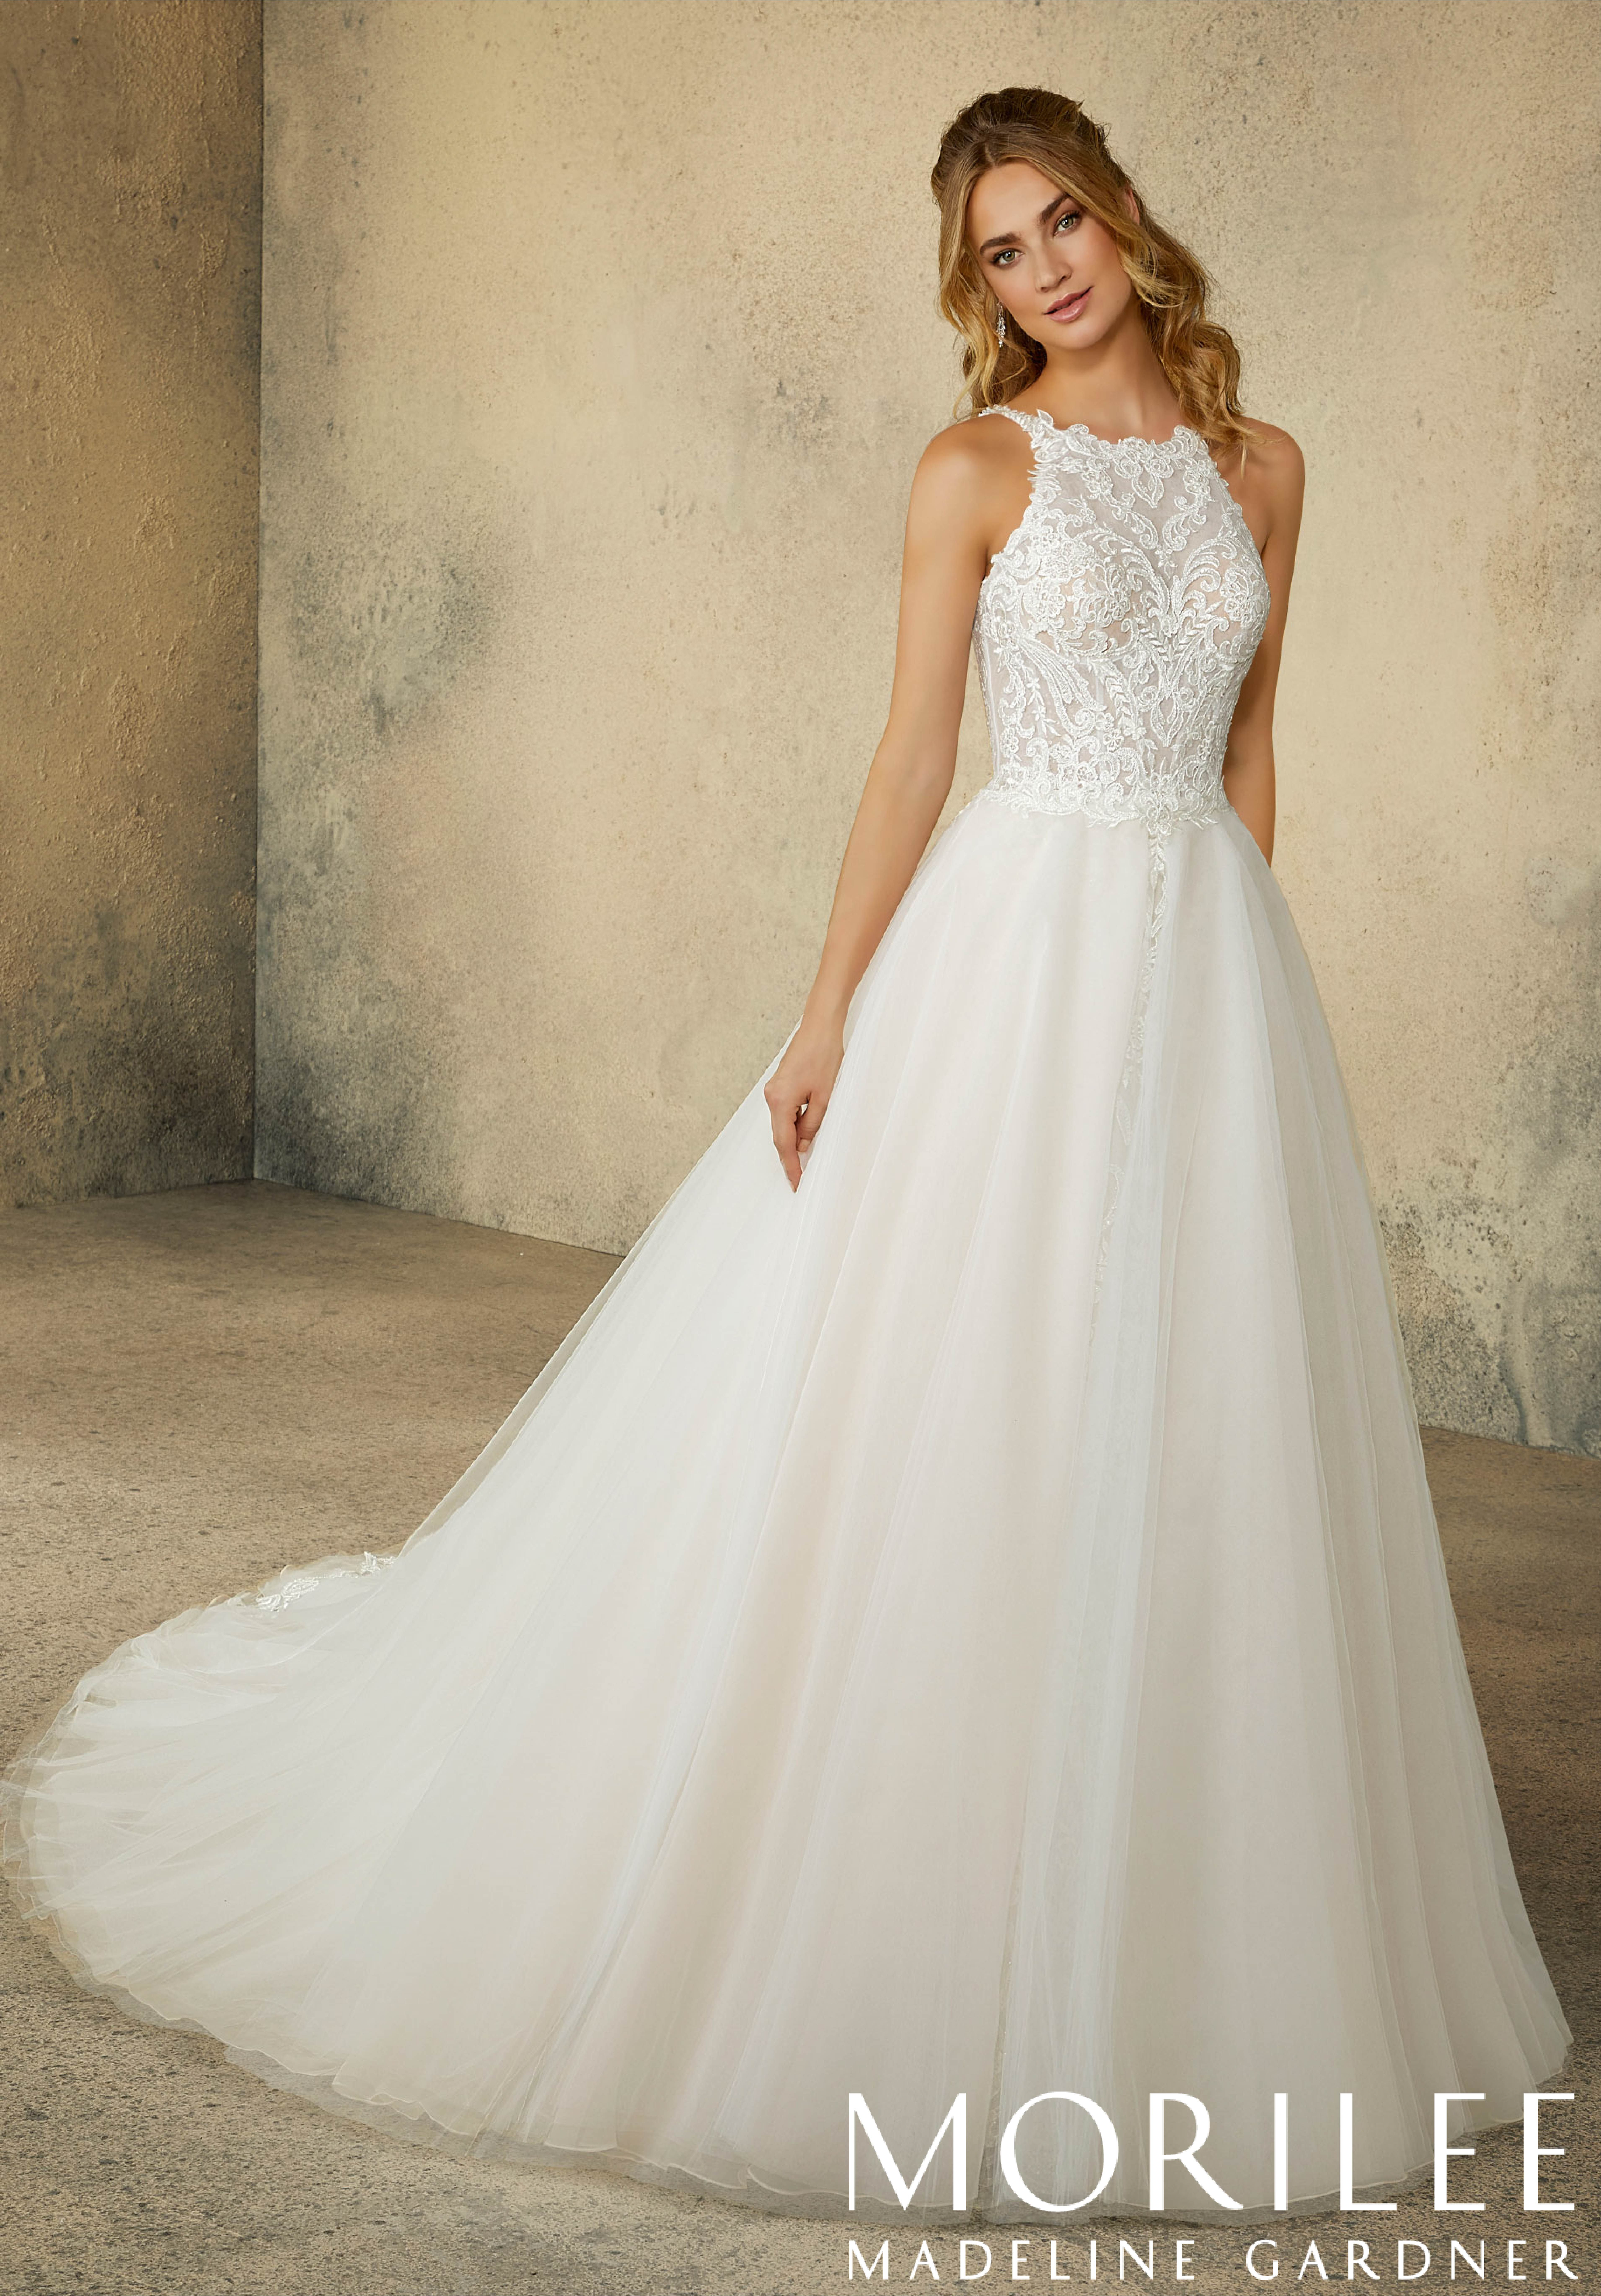 Morilee   Madeline Gardner, Rebecca Style 2071   Frosted, Embroidered Lace Appliqués on an A-Line, English Net Over Sequined Net Gown